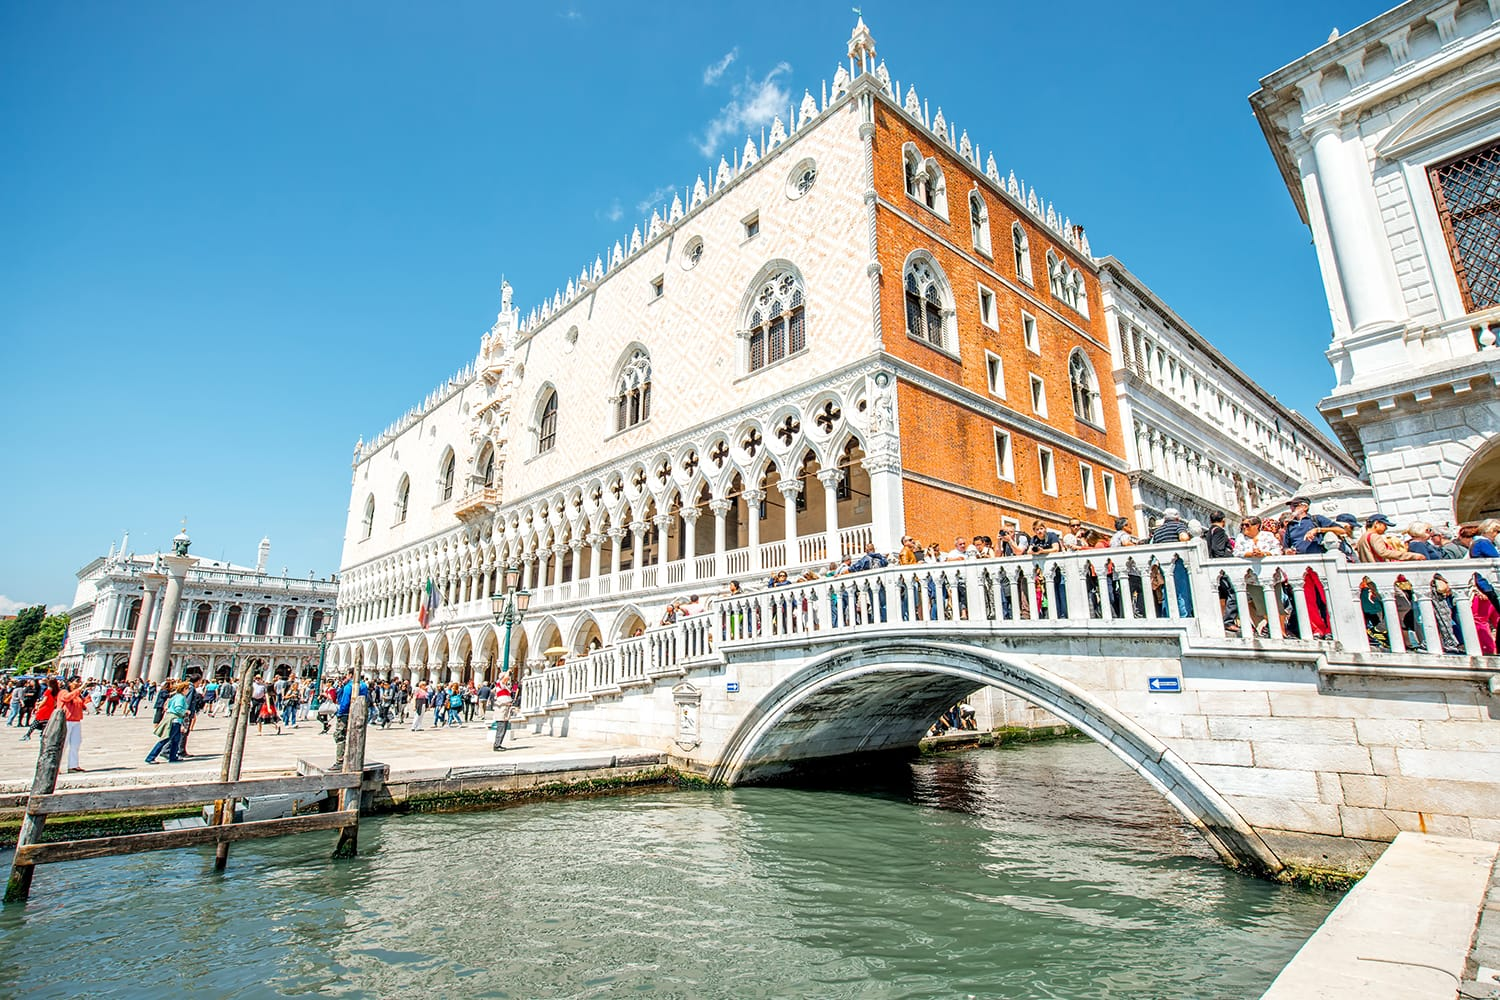 View on Doges palace with tourists walk on the bridge and San Marco square in Venice, Italy